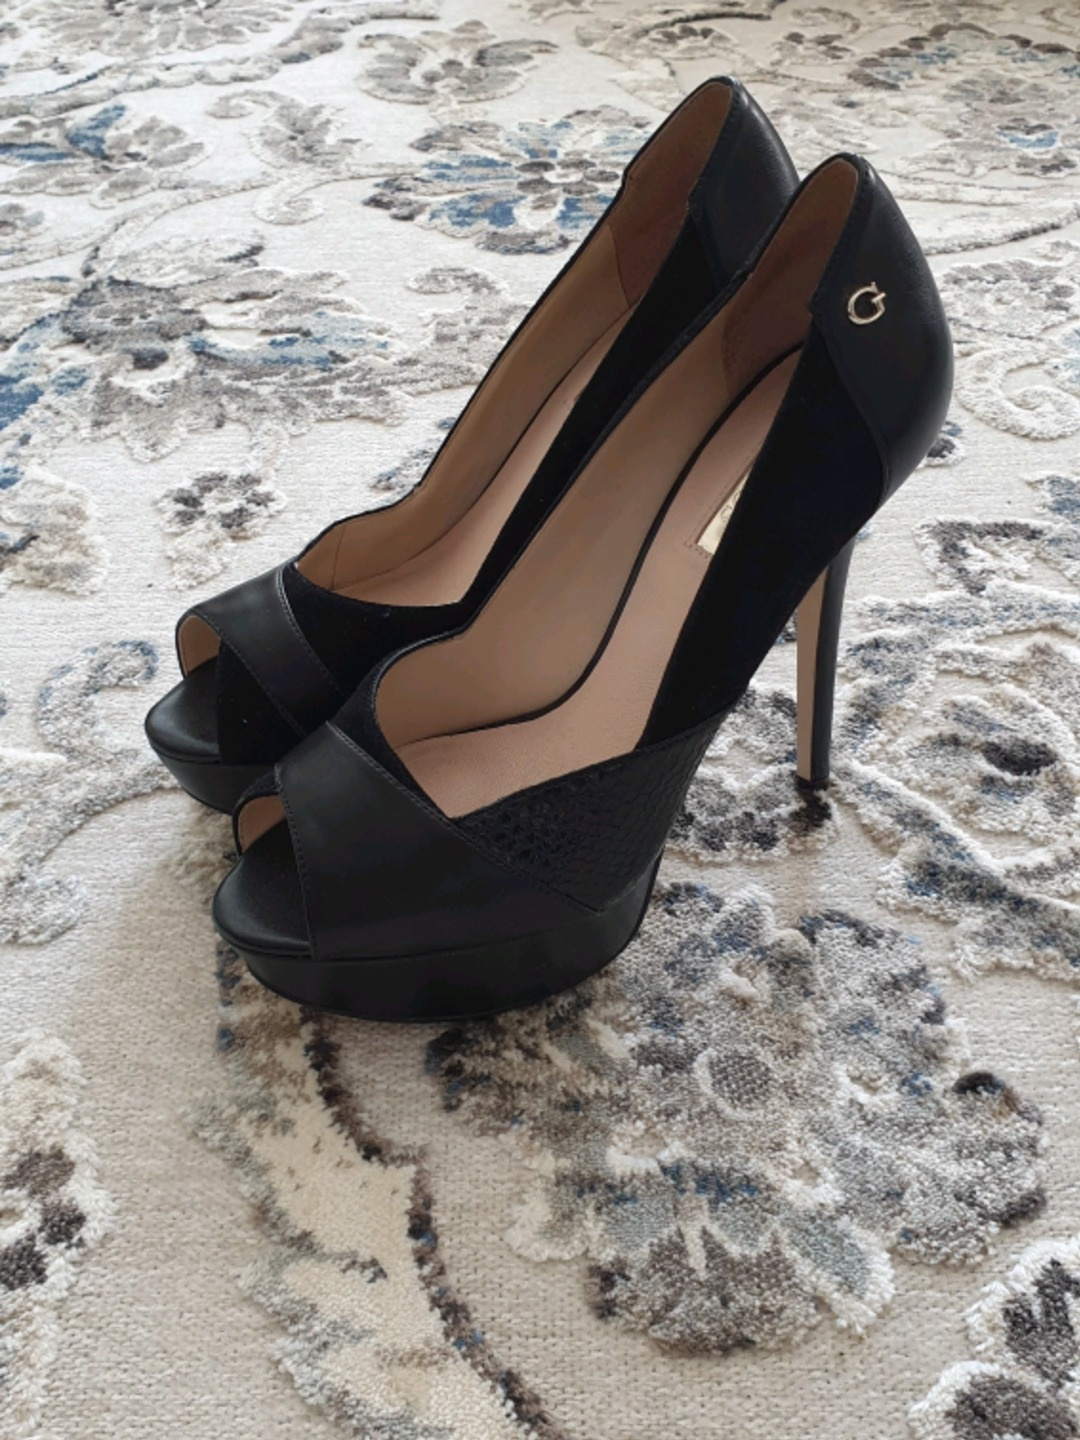 Women's heels & dress shoes - GUESS photo 1